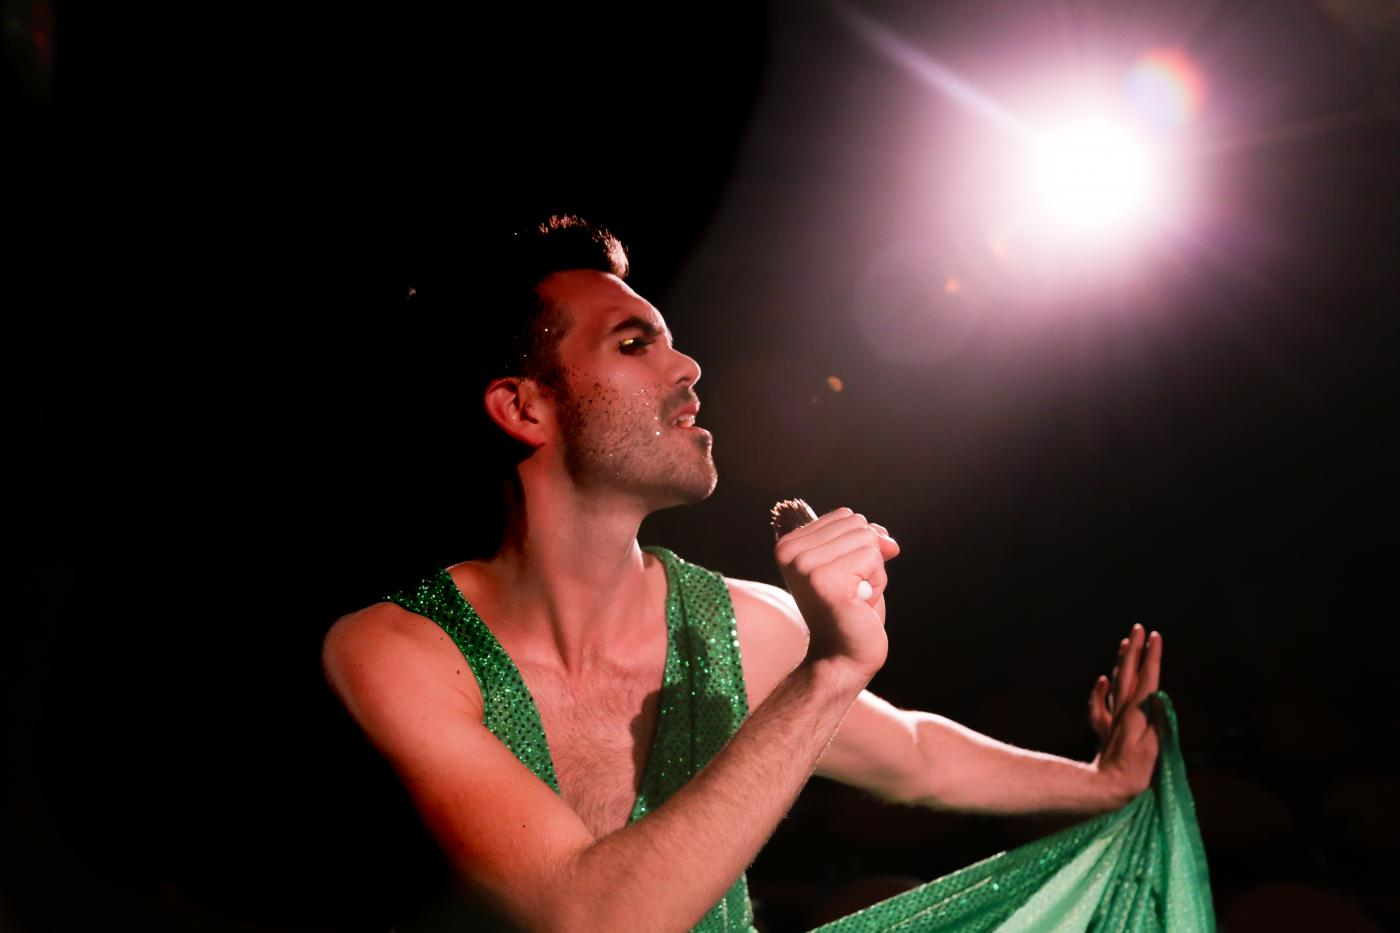 John sings into a microphone, while wearing makeup and a green dress, in front of a bright spotlight.